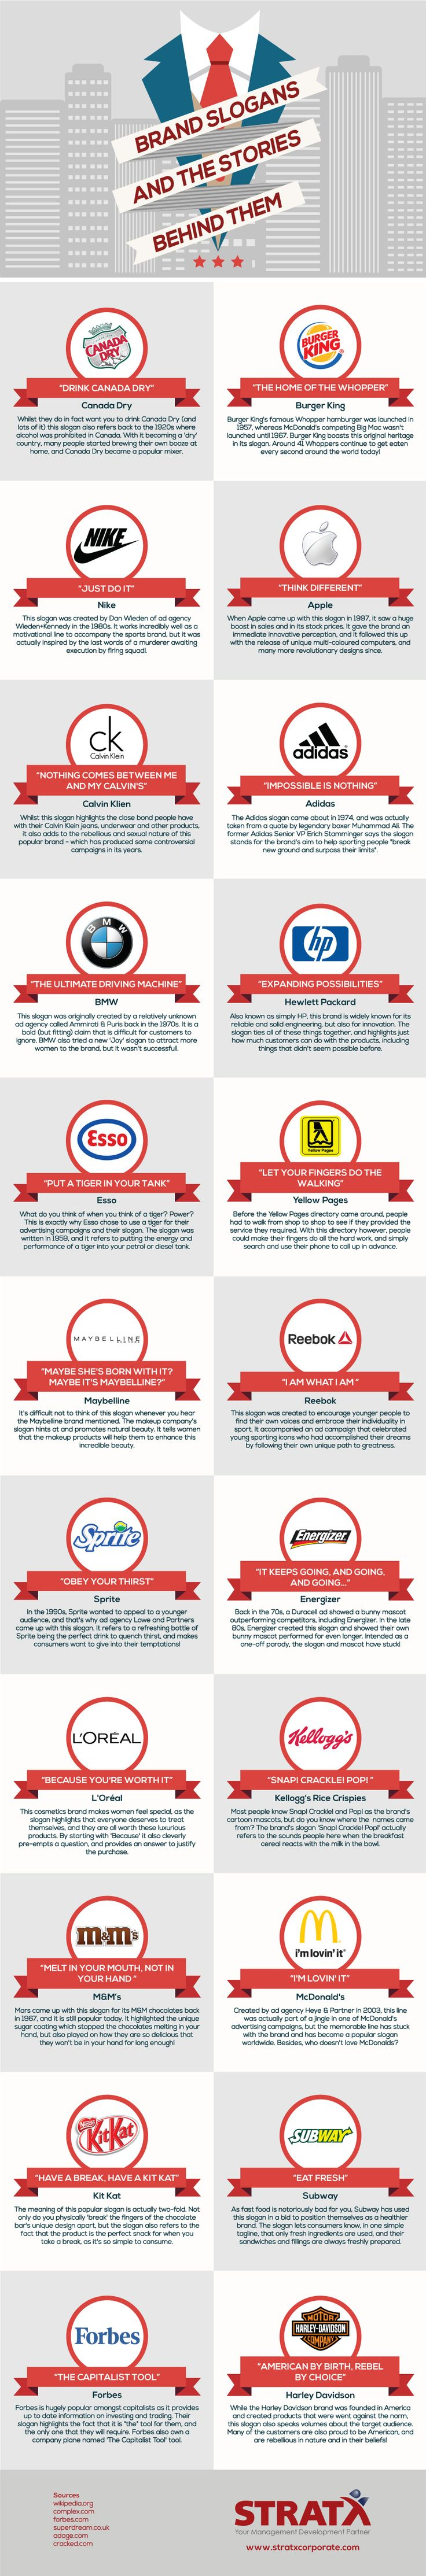 Brand Slogans and the Stories Behind Them #infographic #Branding #Business #Marketing